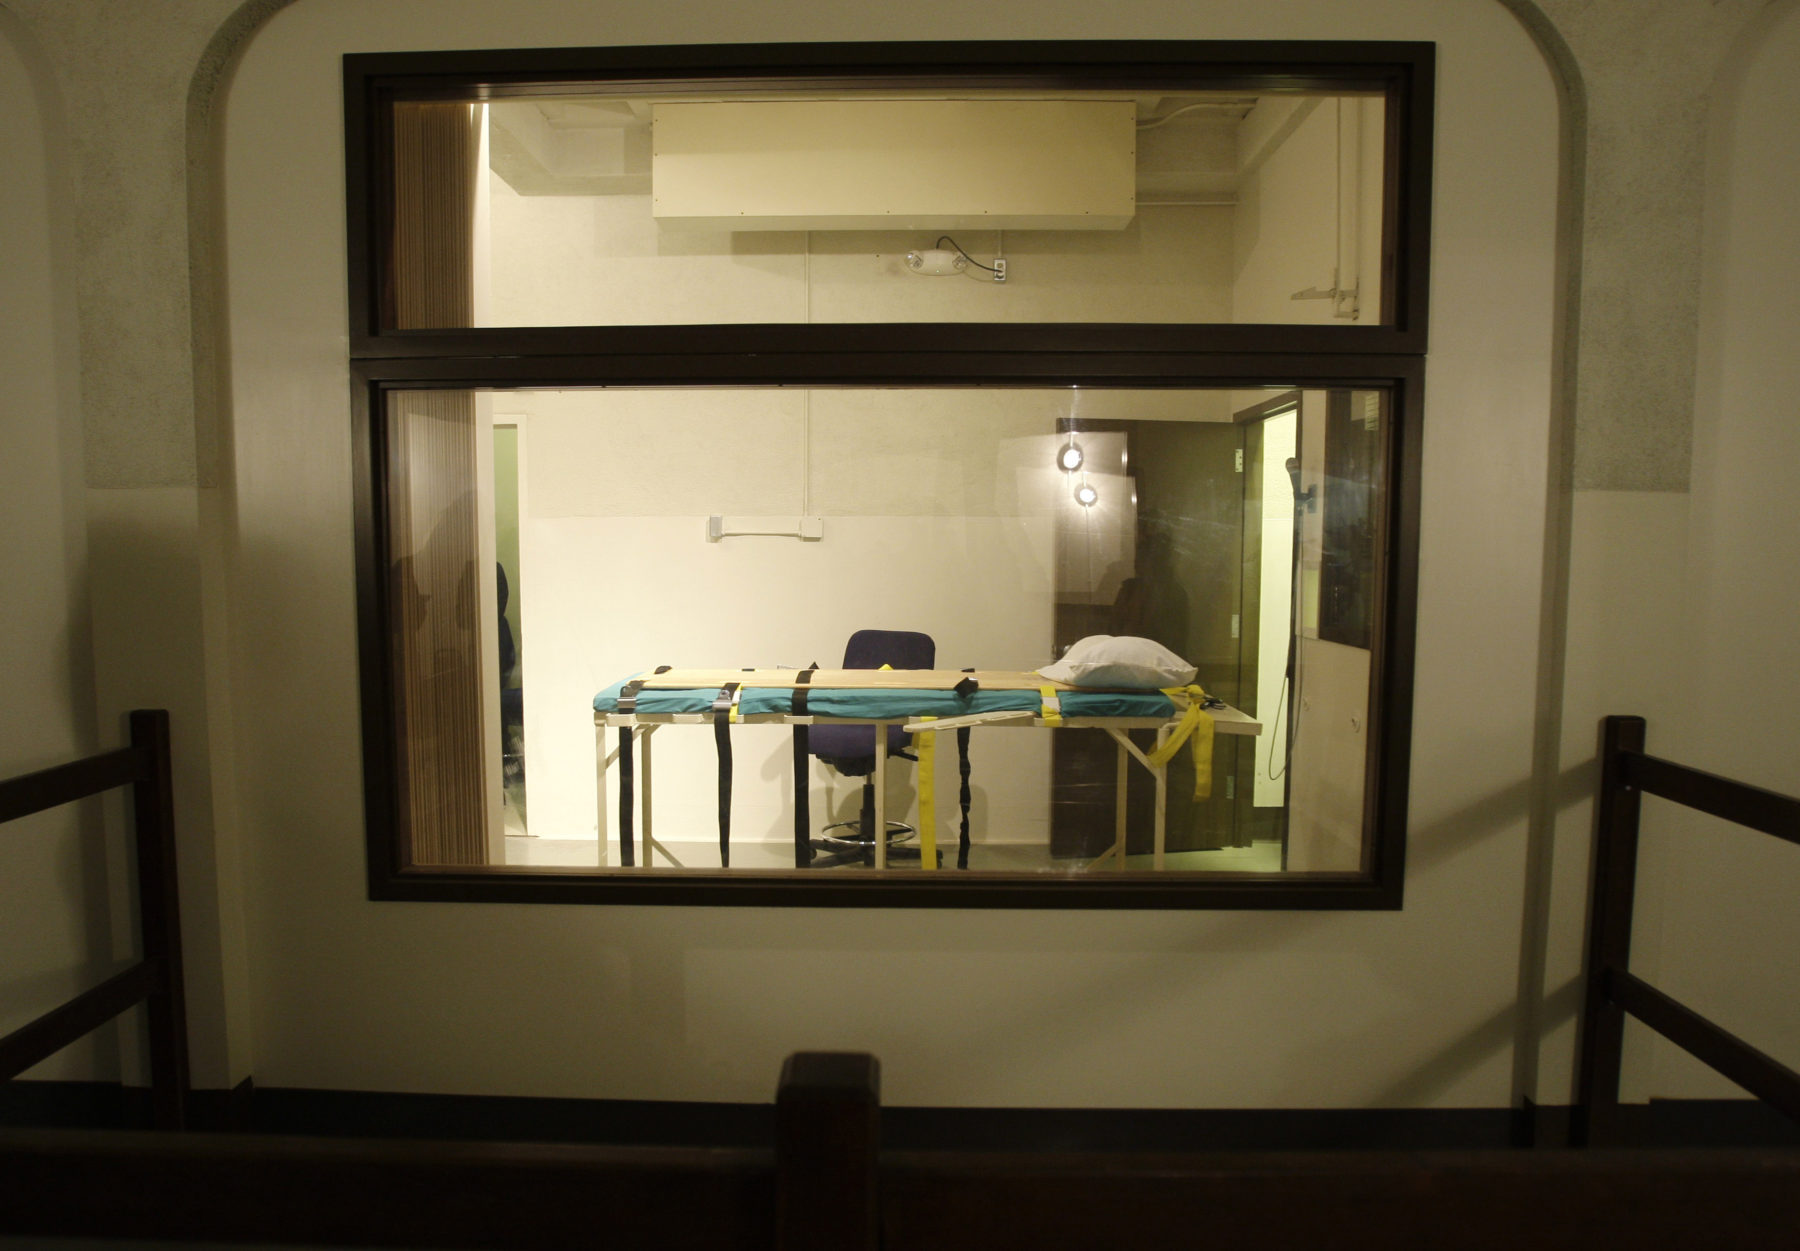 Washington Death Penalty Moratorium